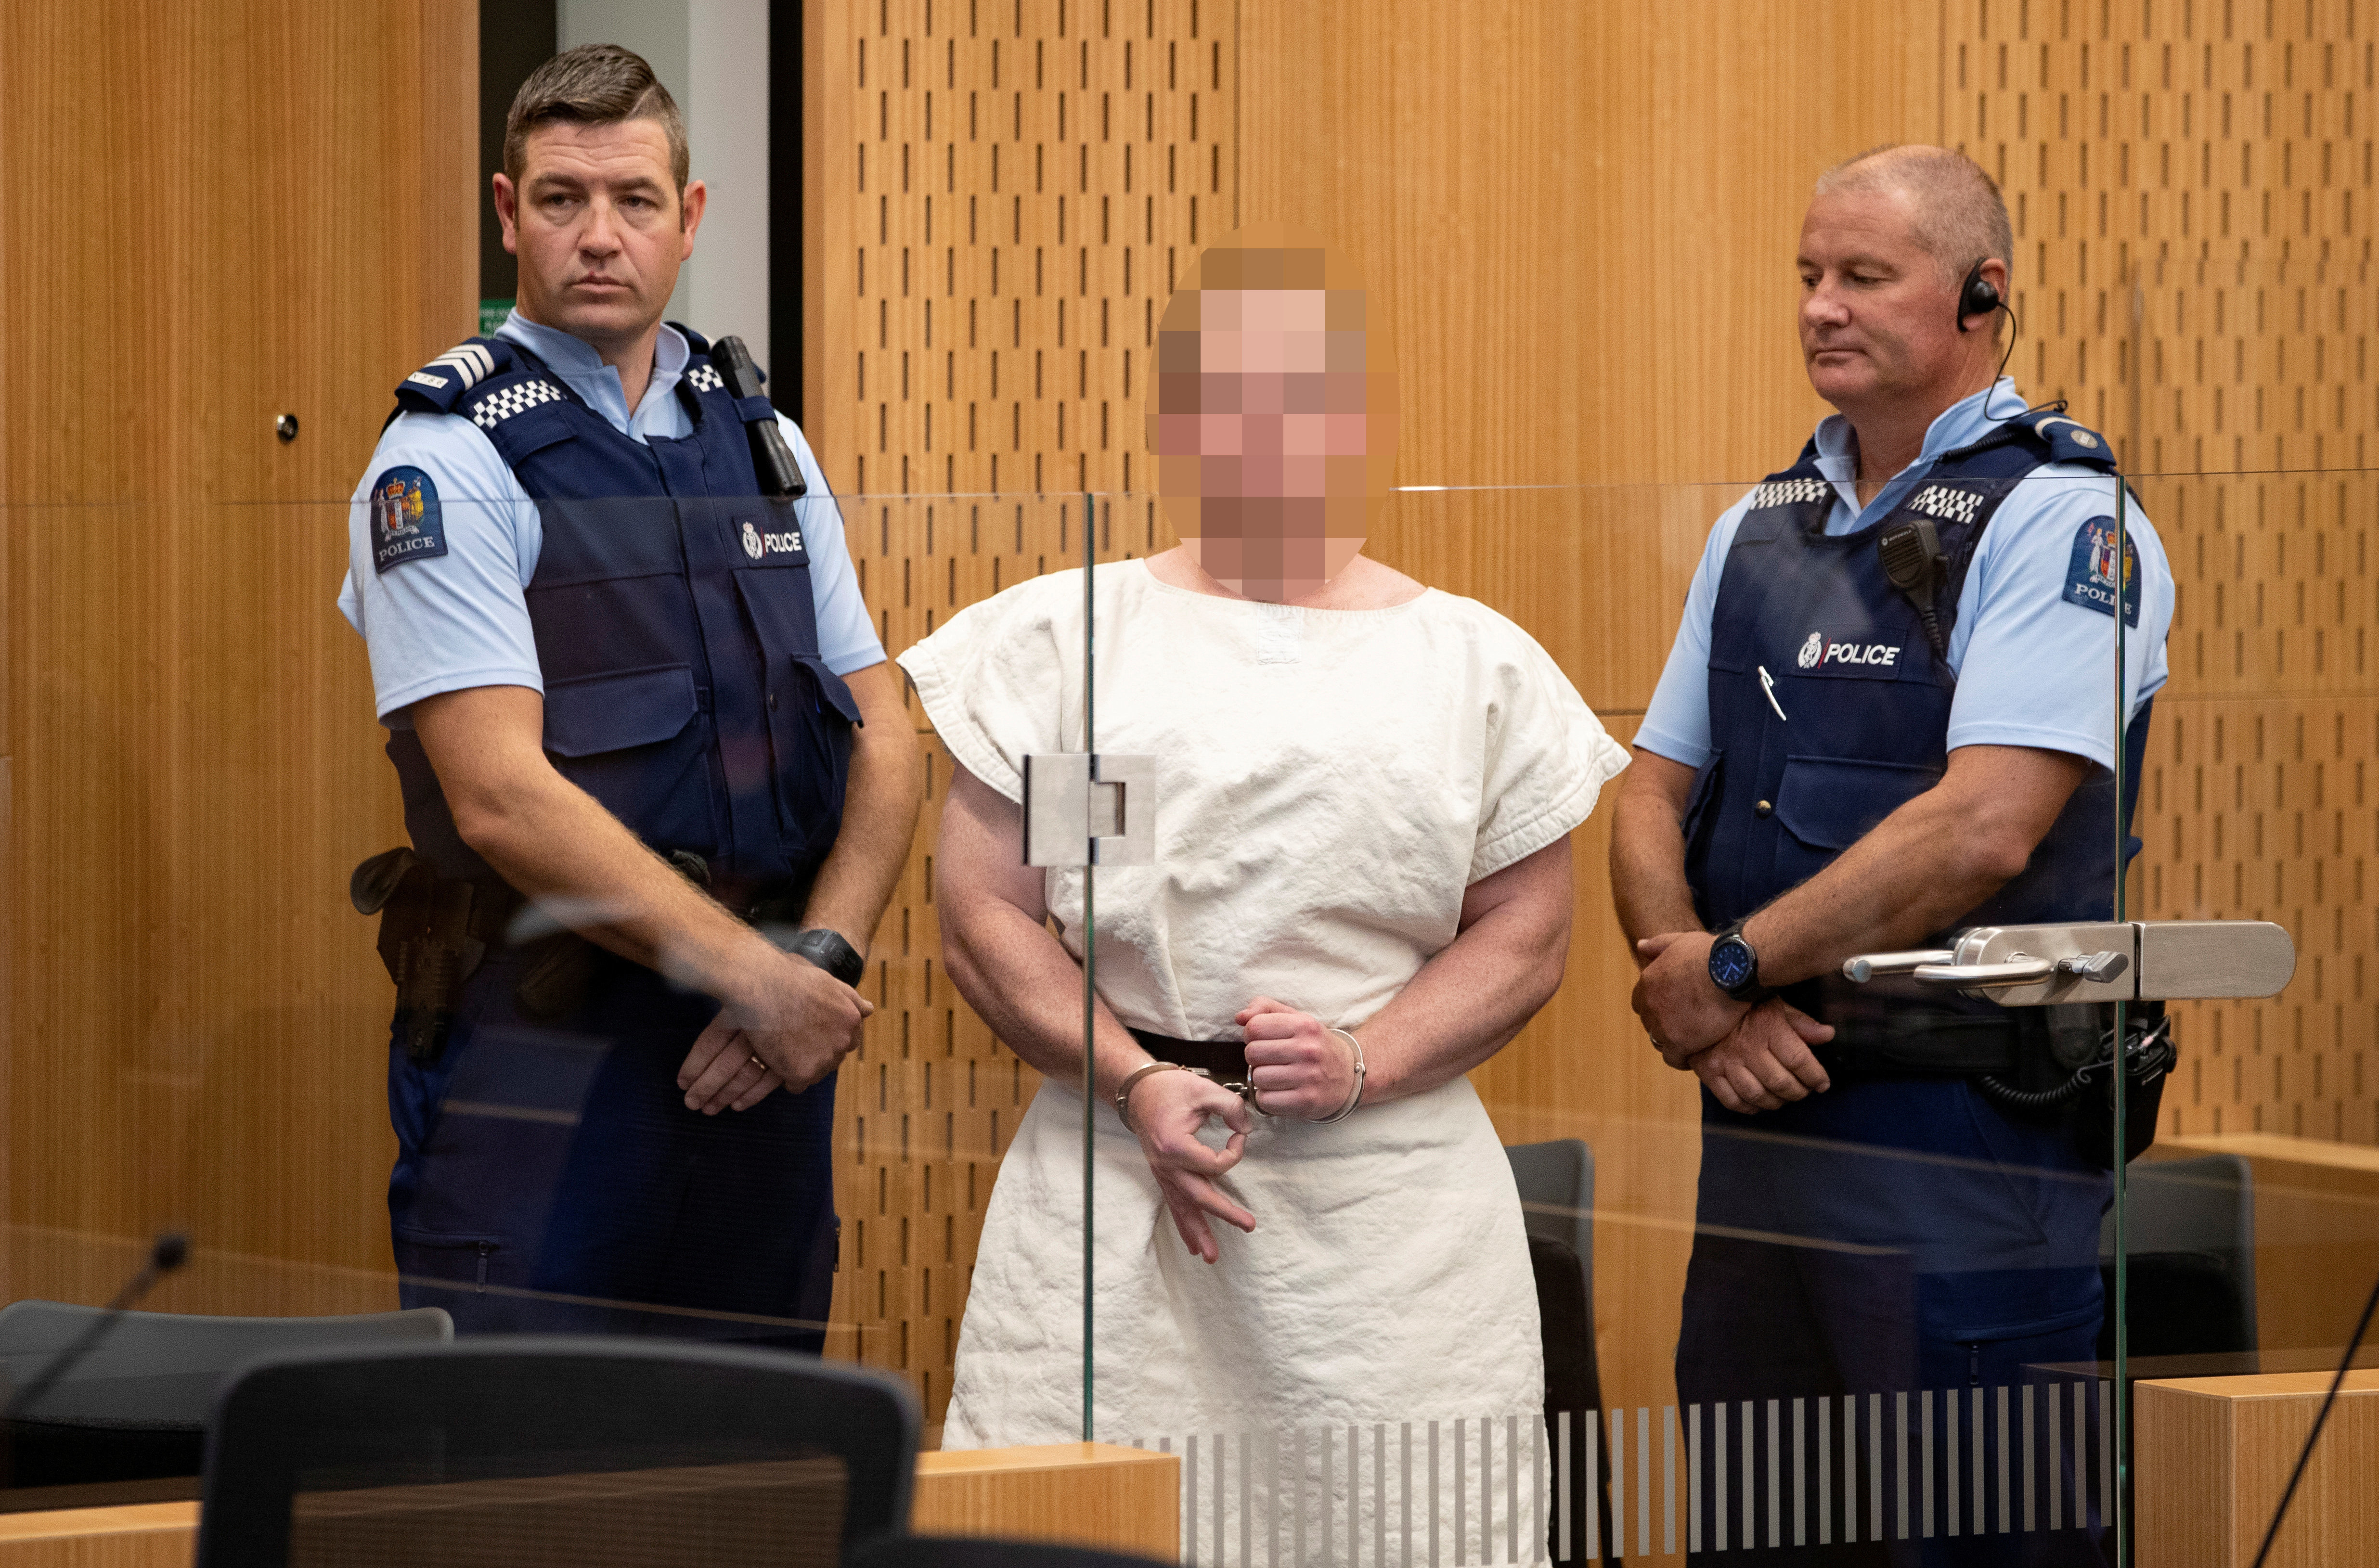 The suspect made a sign to the camera during his appearance in the Christchurch District Court on Saturday.